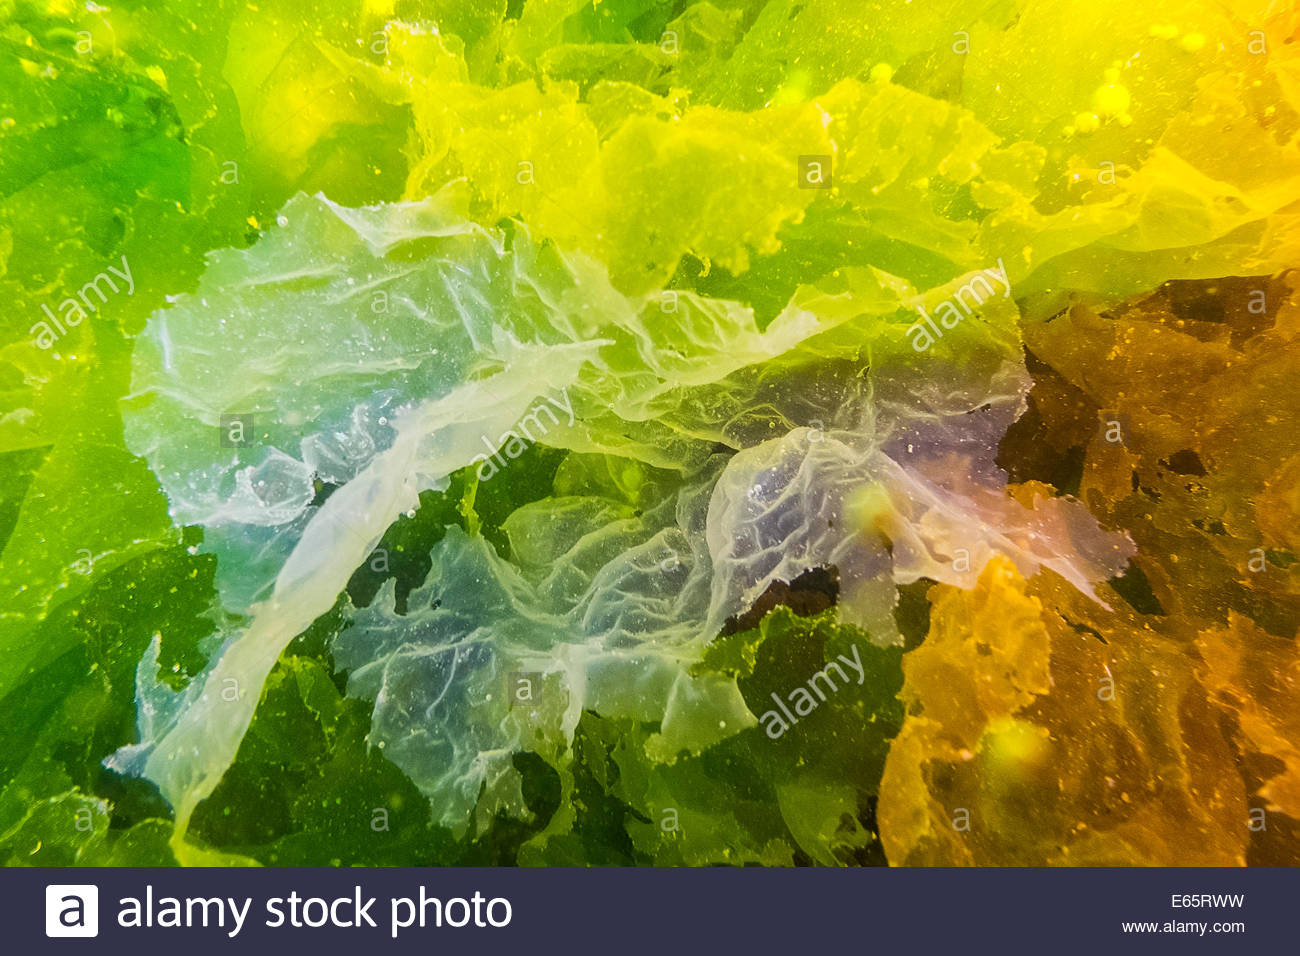 Sea lettuce in a variety of colors grows in a tide pool on Des Moines Beach, Des Moines, Washington. - Stock Image